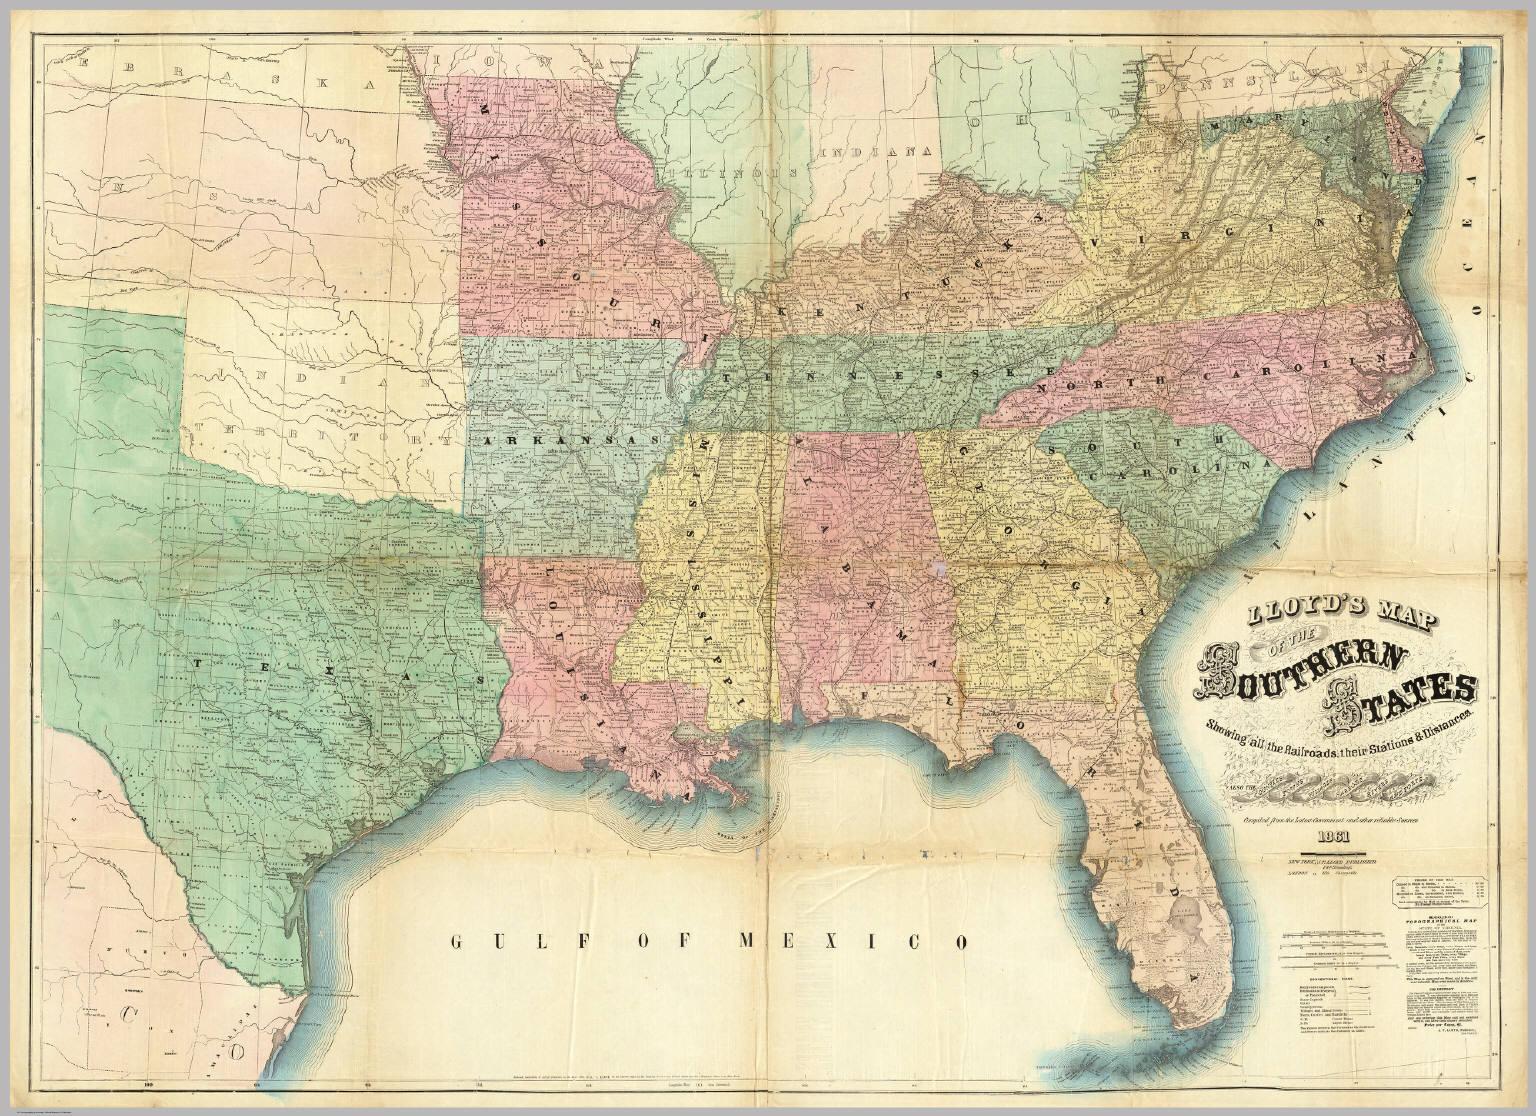 Lloyds Map Of The Southern States  David Rumsey Historical Map